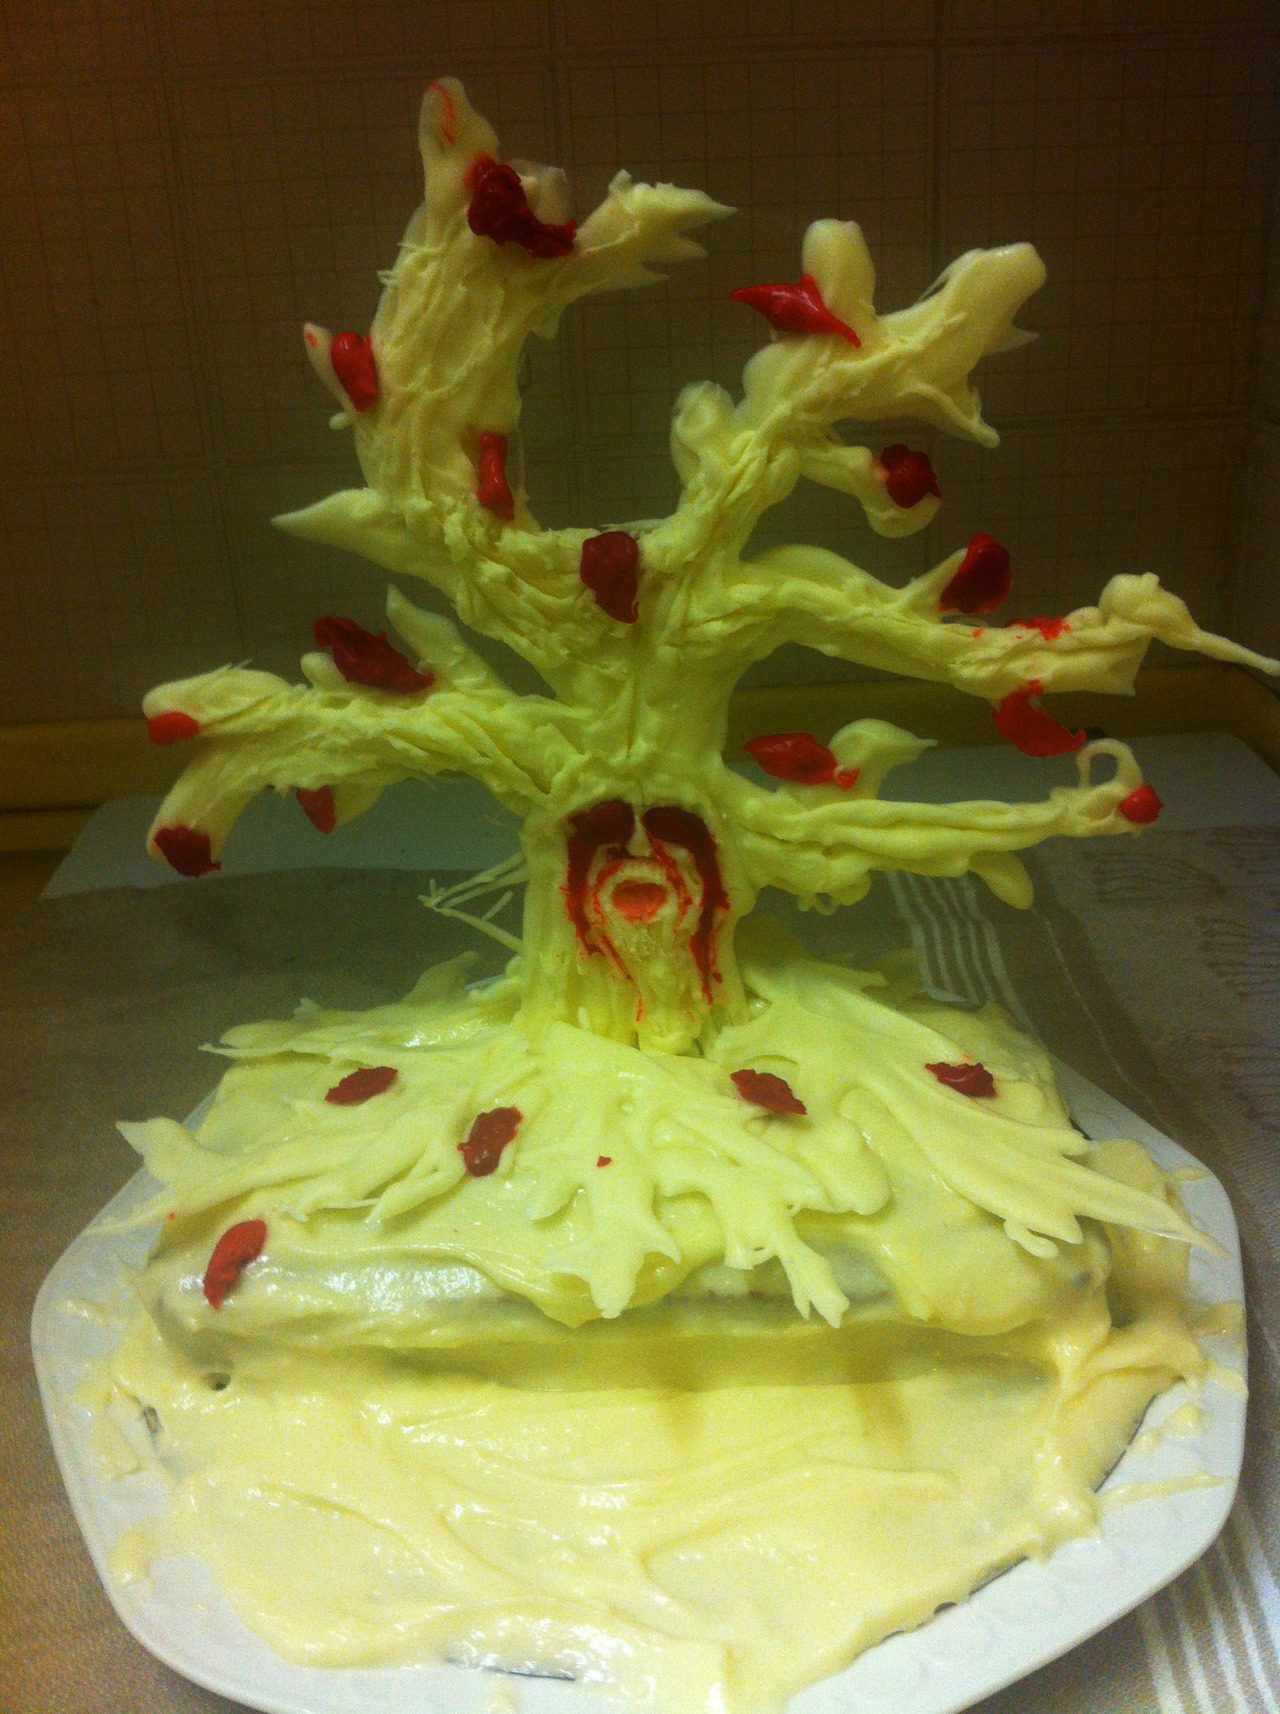 This is my red velvet and white chocolate Weirwood cake, because I am of the North and still pray to the Old Gods.